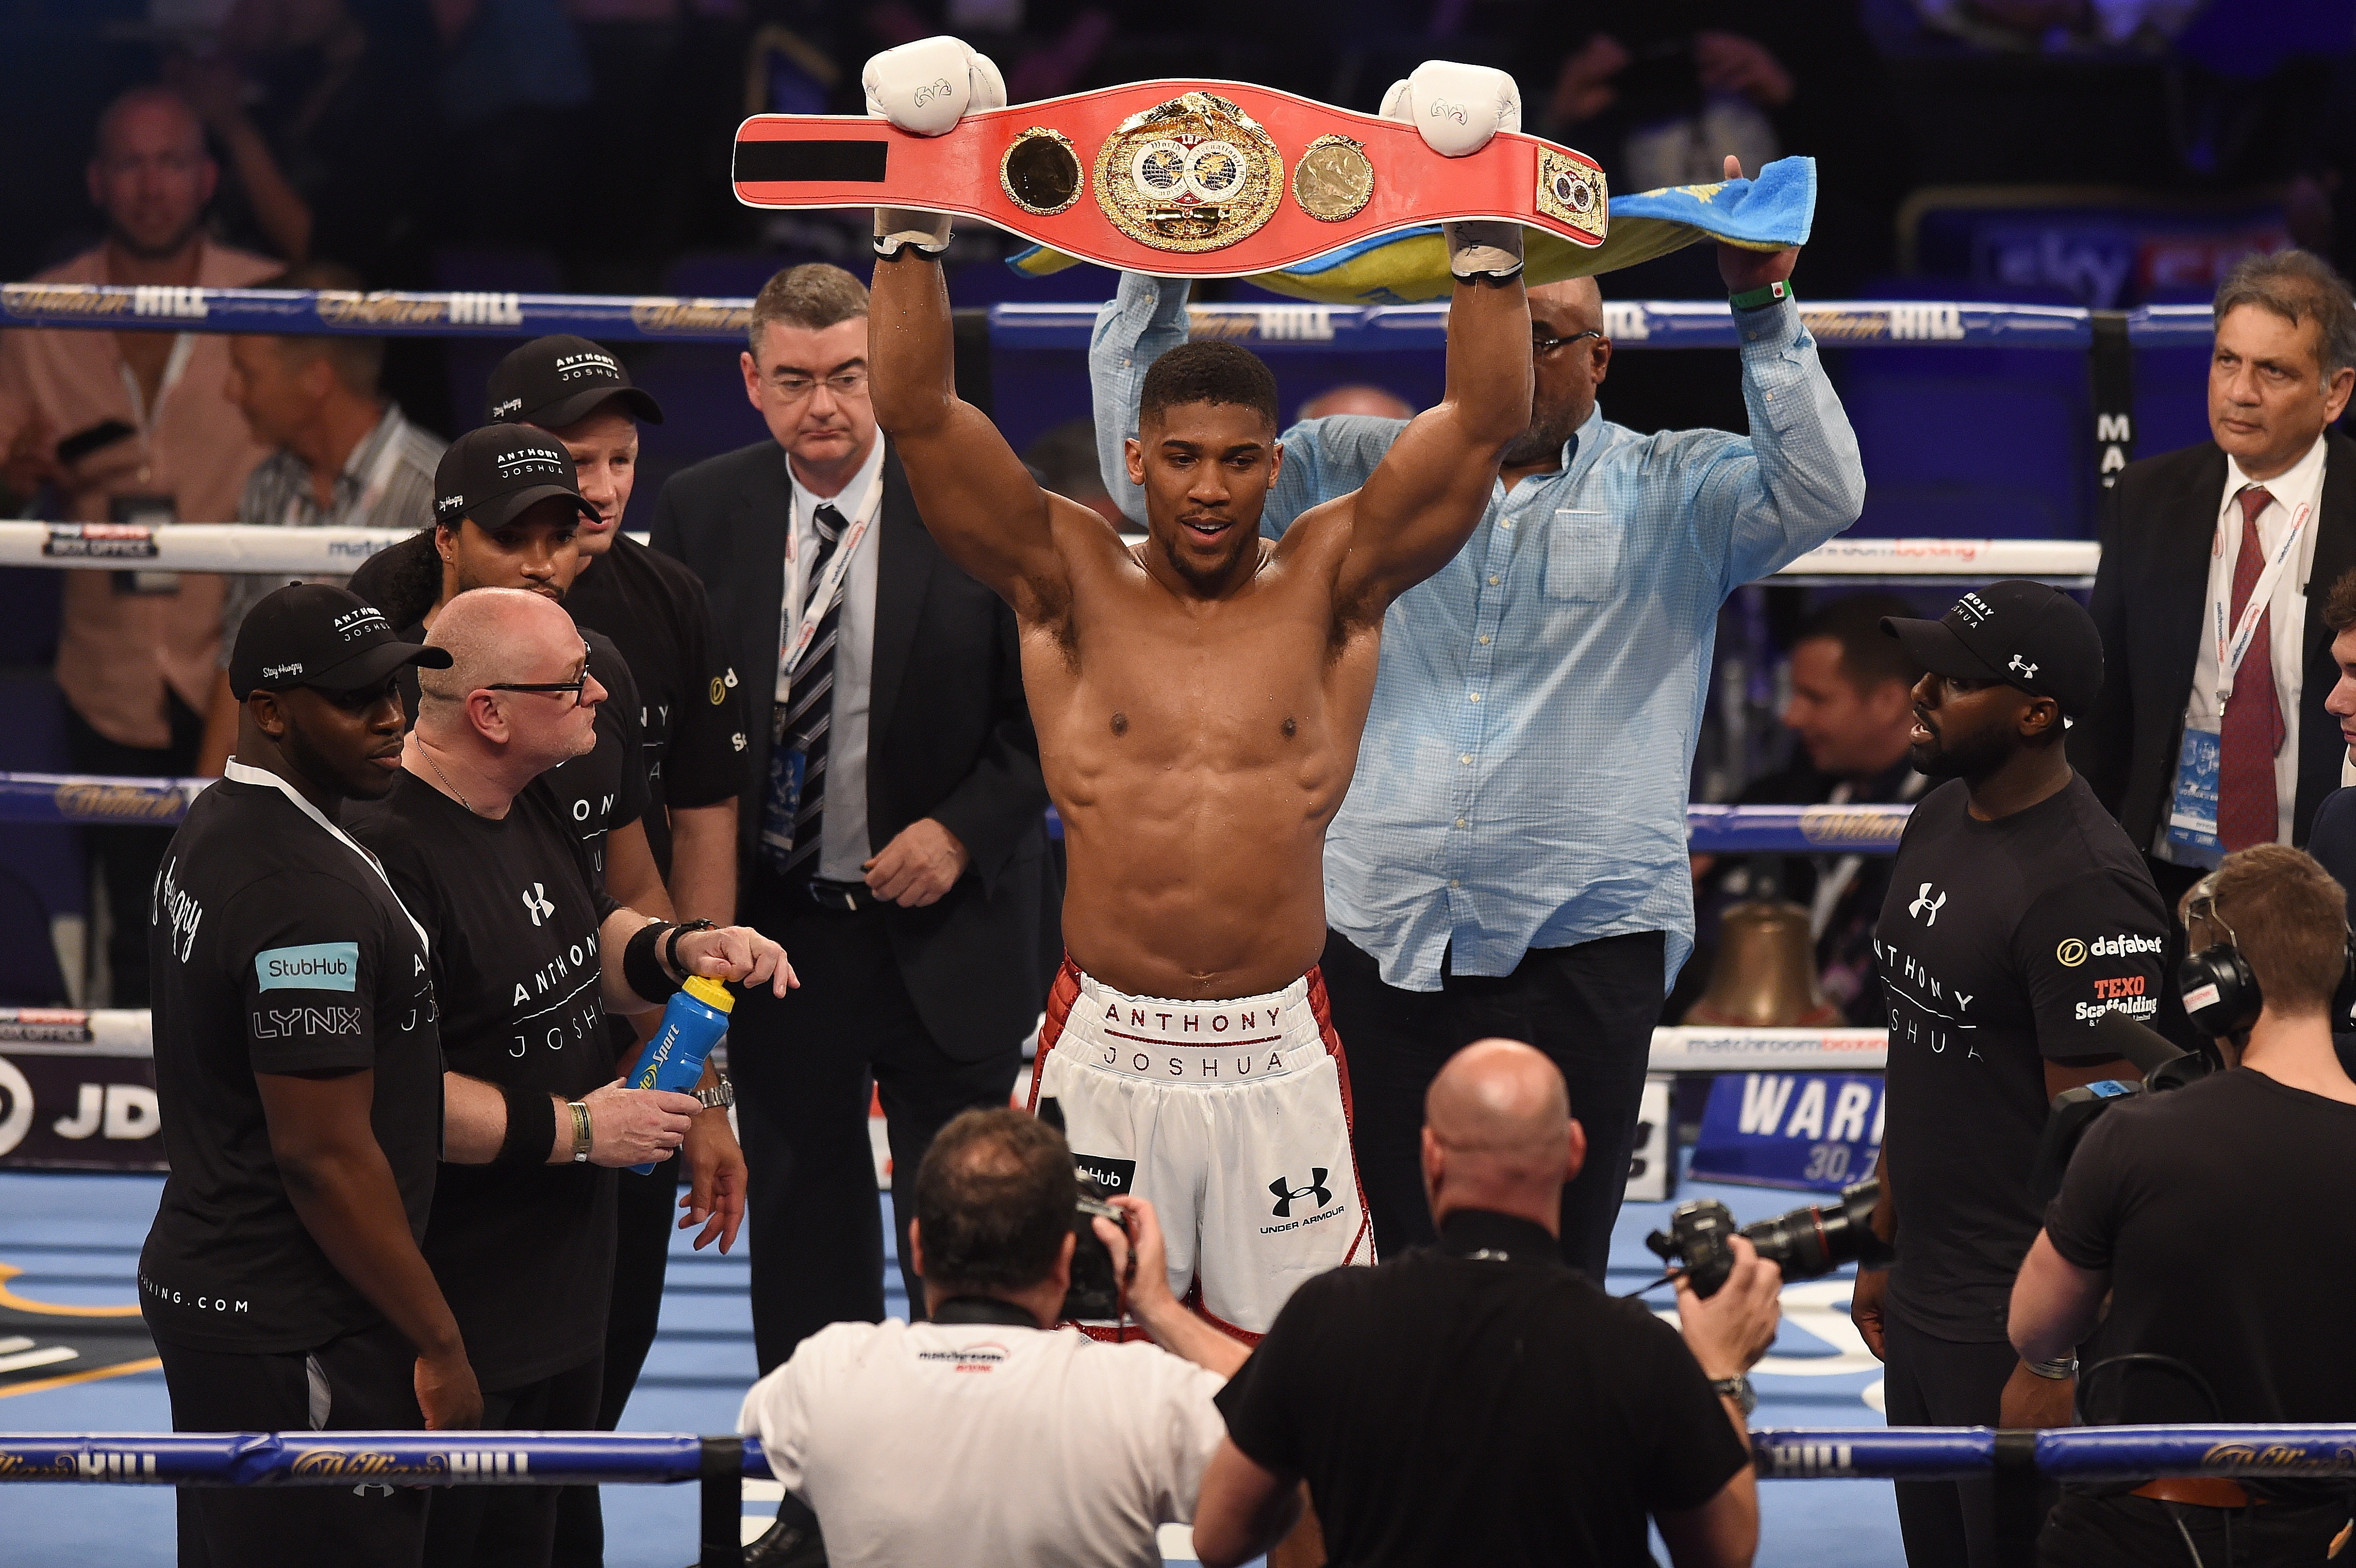 Anthony Joshua will not be fighting David Price in November, confirms Eddie Hearn